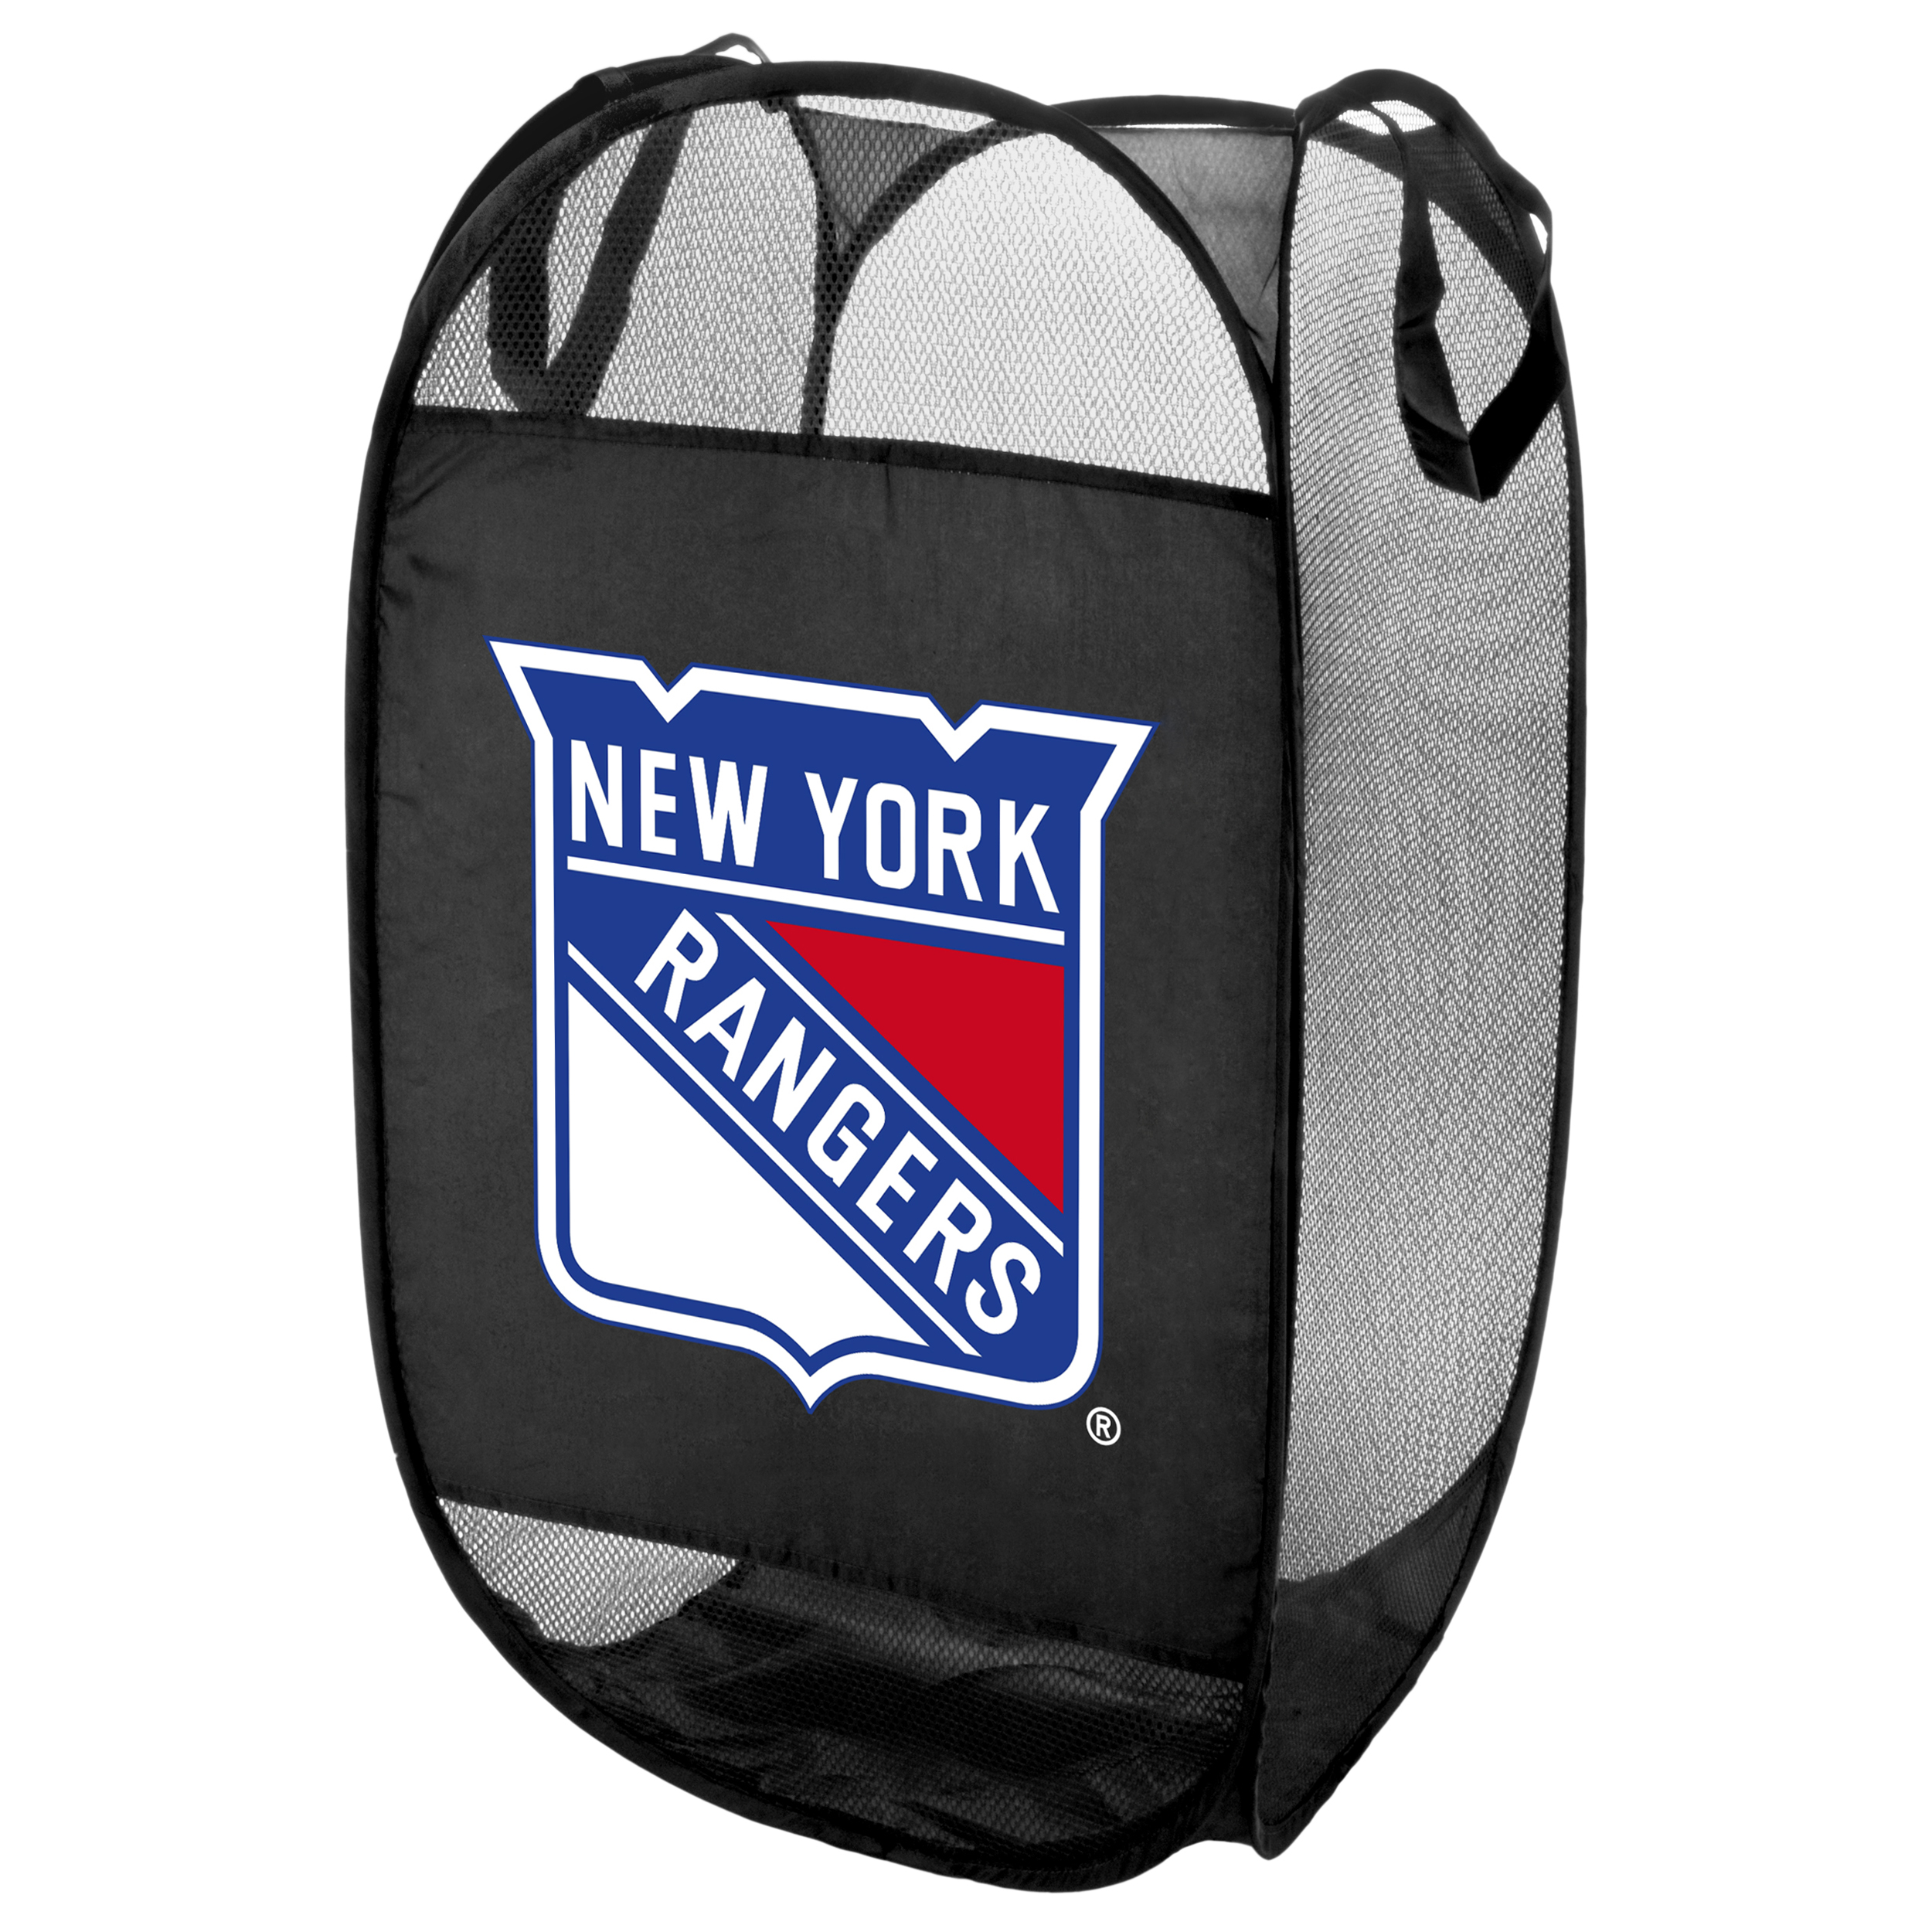 New York Rangers Official NHL Laundry Hamper Fold Up Flip Open by Forever Collectibles 050650